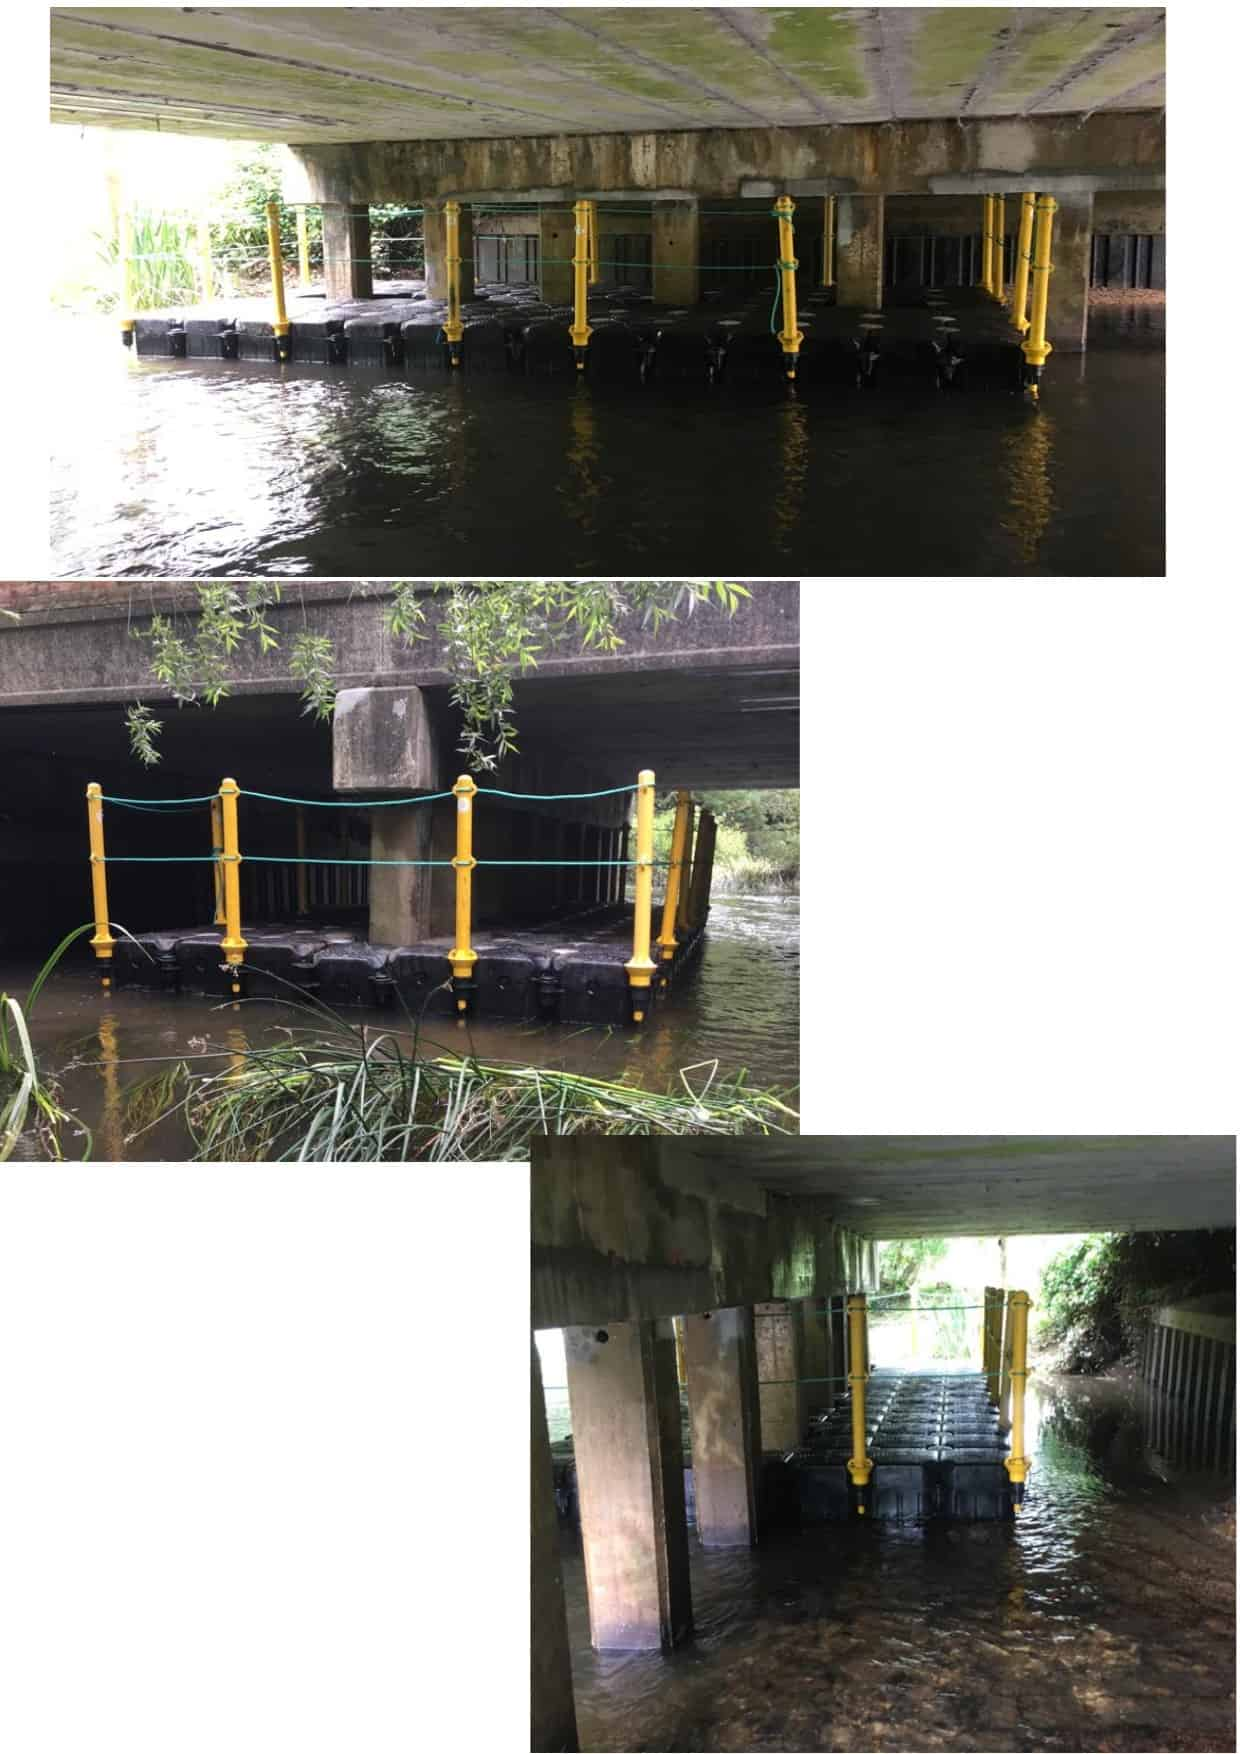 Swallowfield bridge repairs with modular cubes and handrails